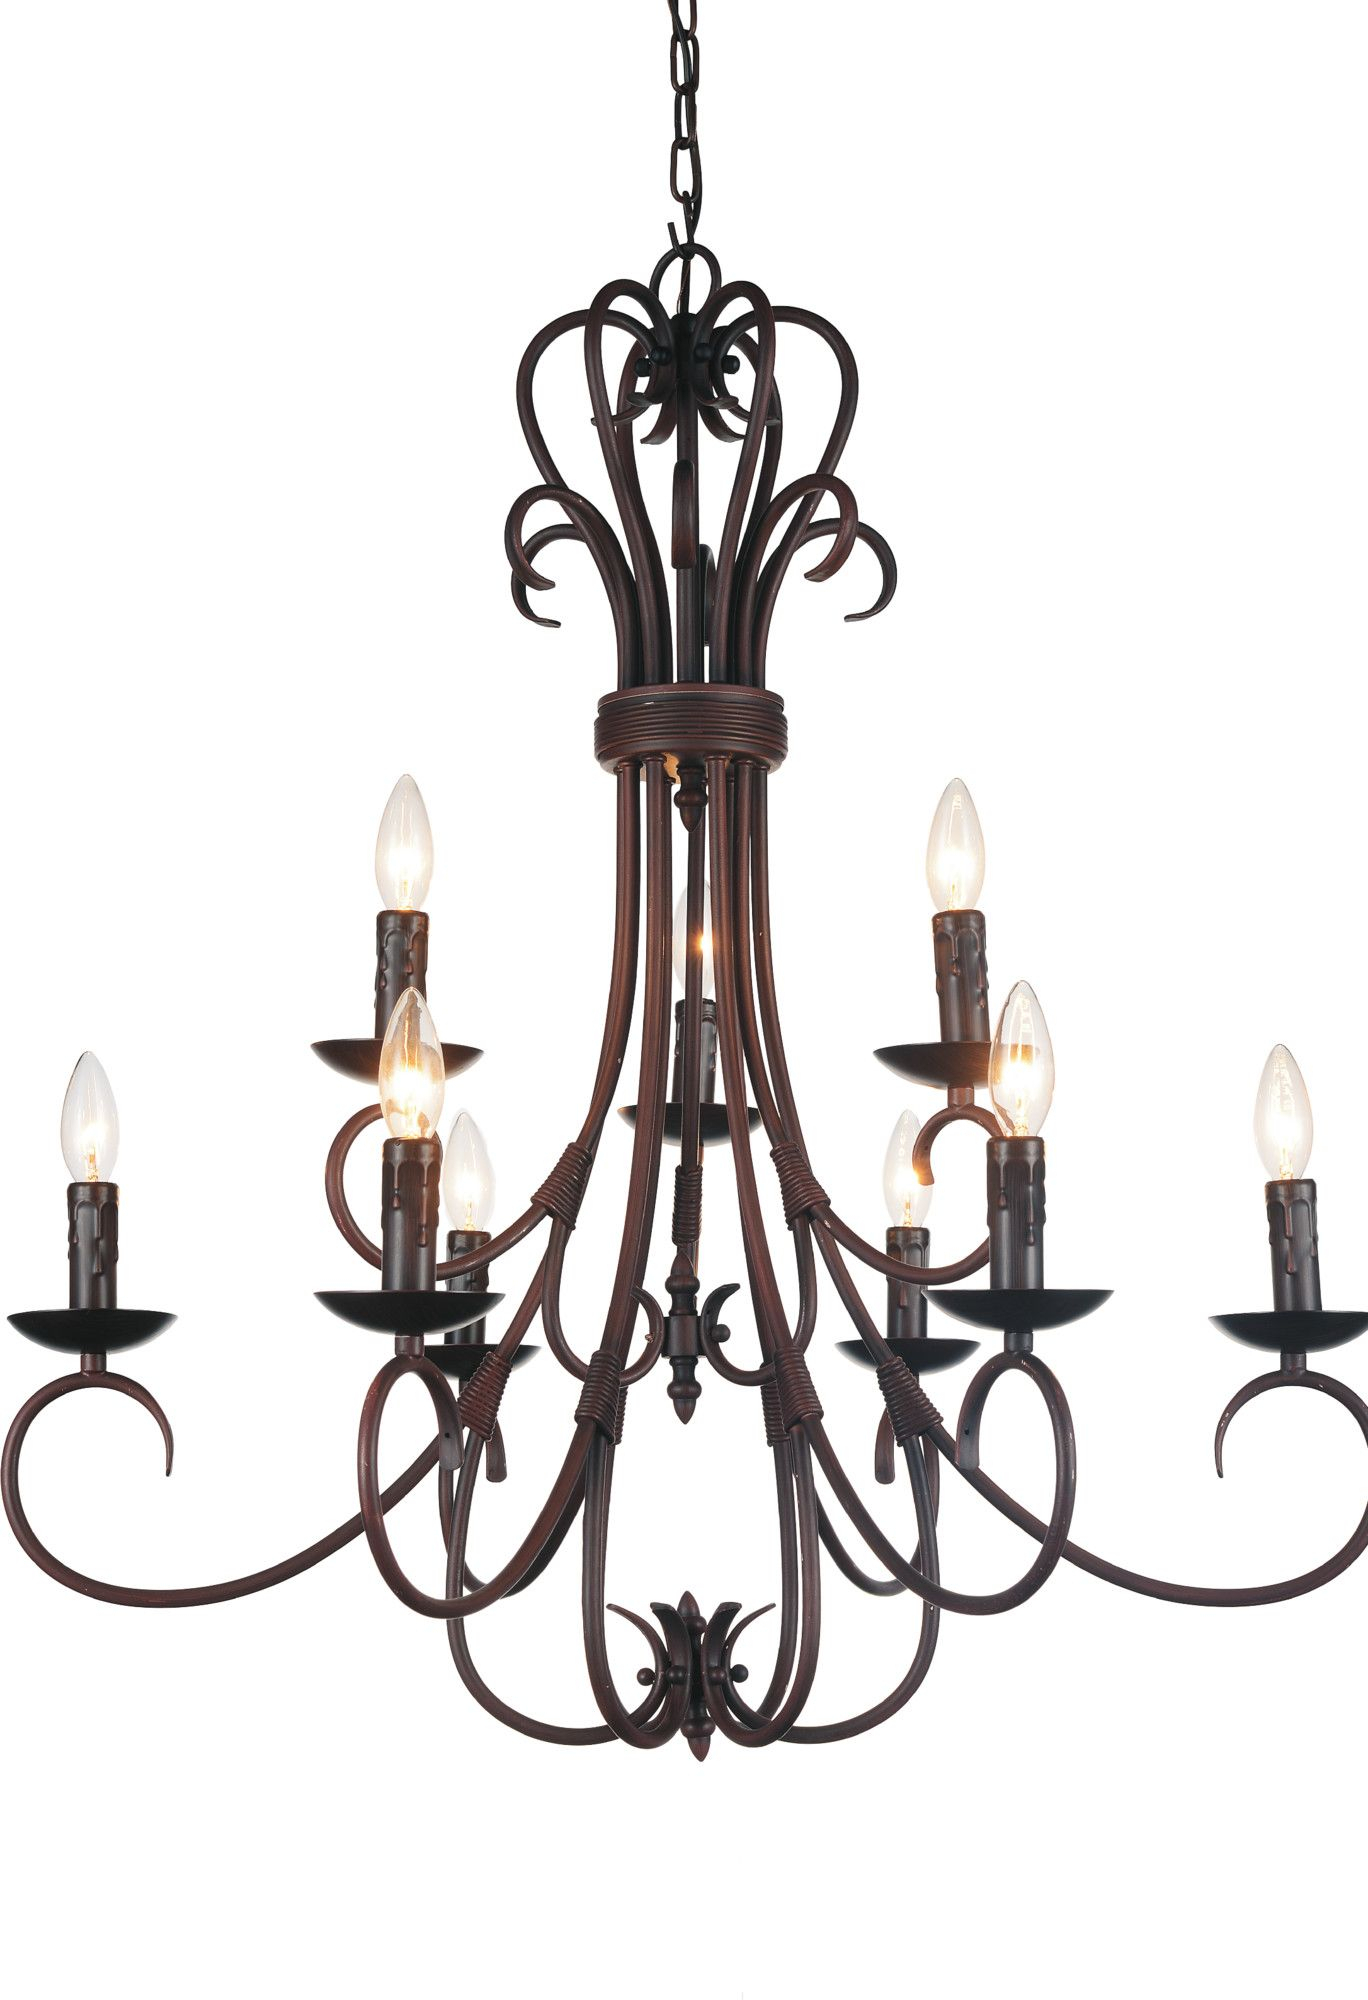 Maddy 6-Light Foyer Lantern Pendant | Chandelier regarding Camilla 9-Light Candle Style Chandeliers (Image 21 of 30)